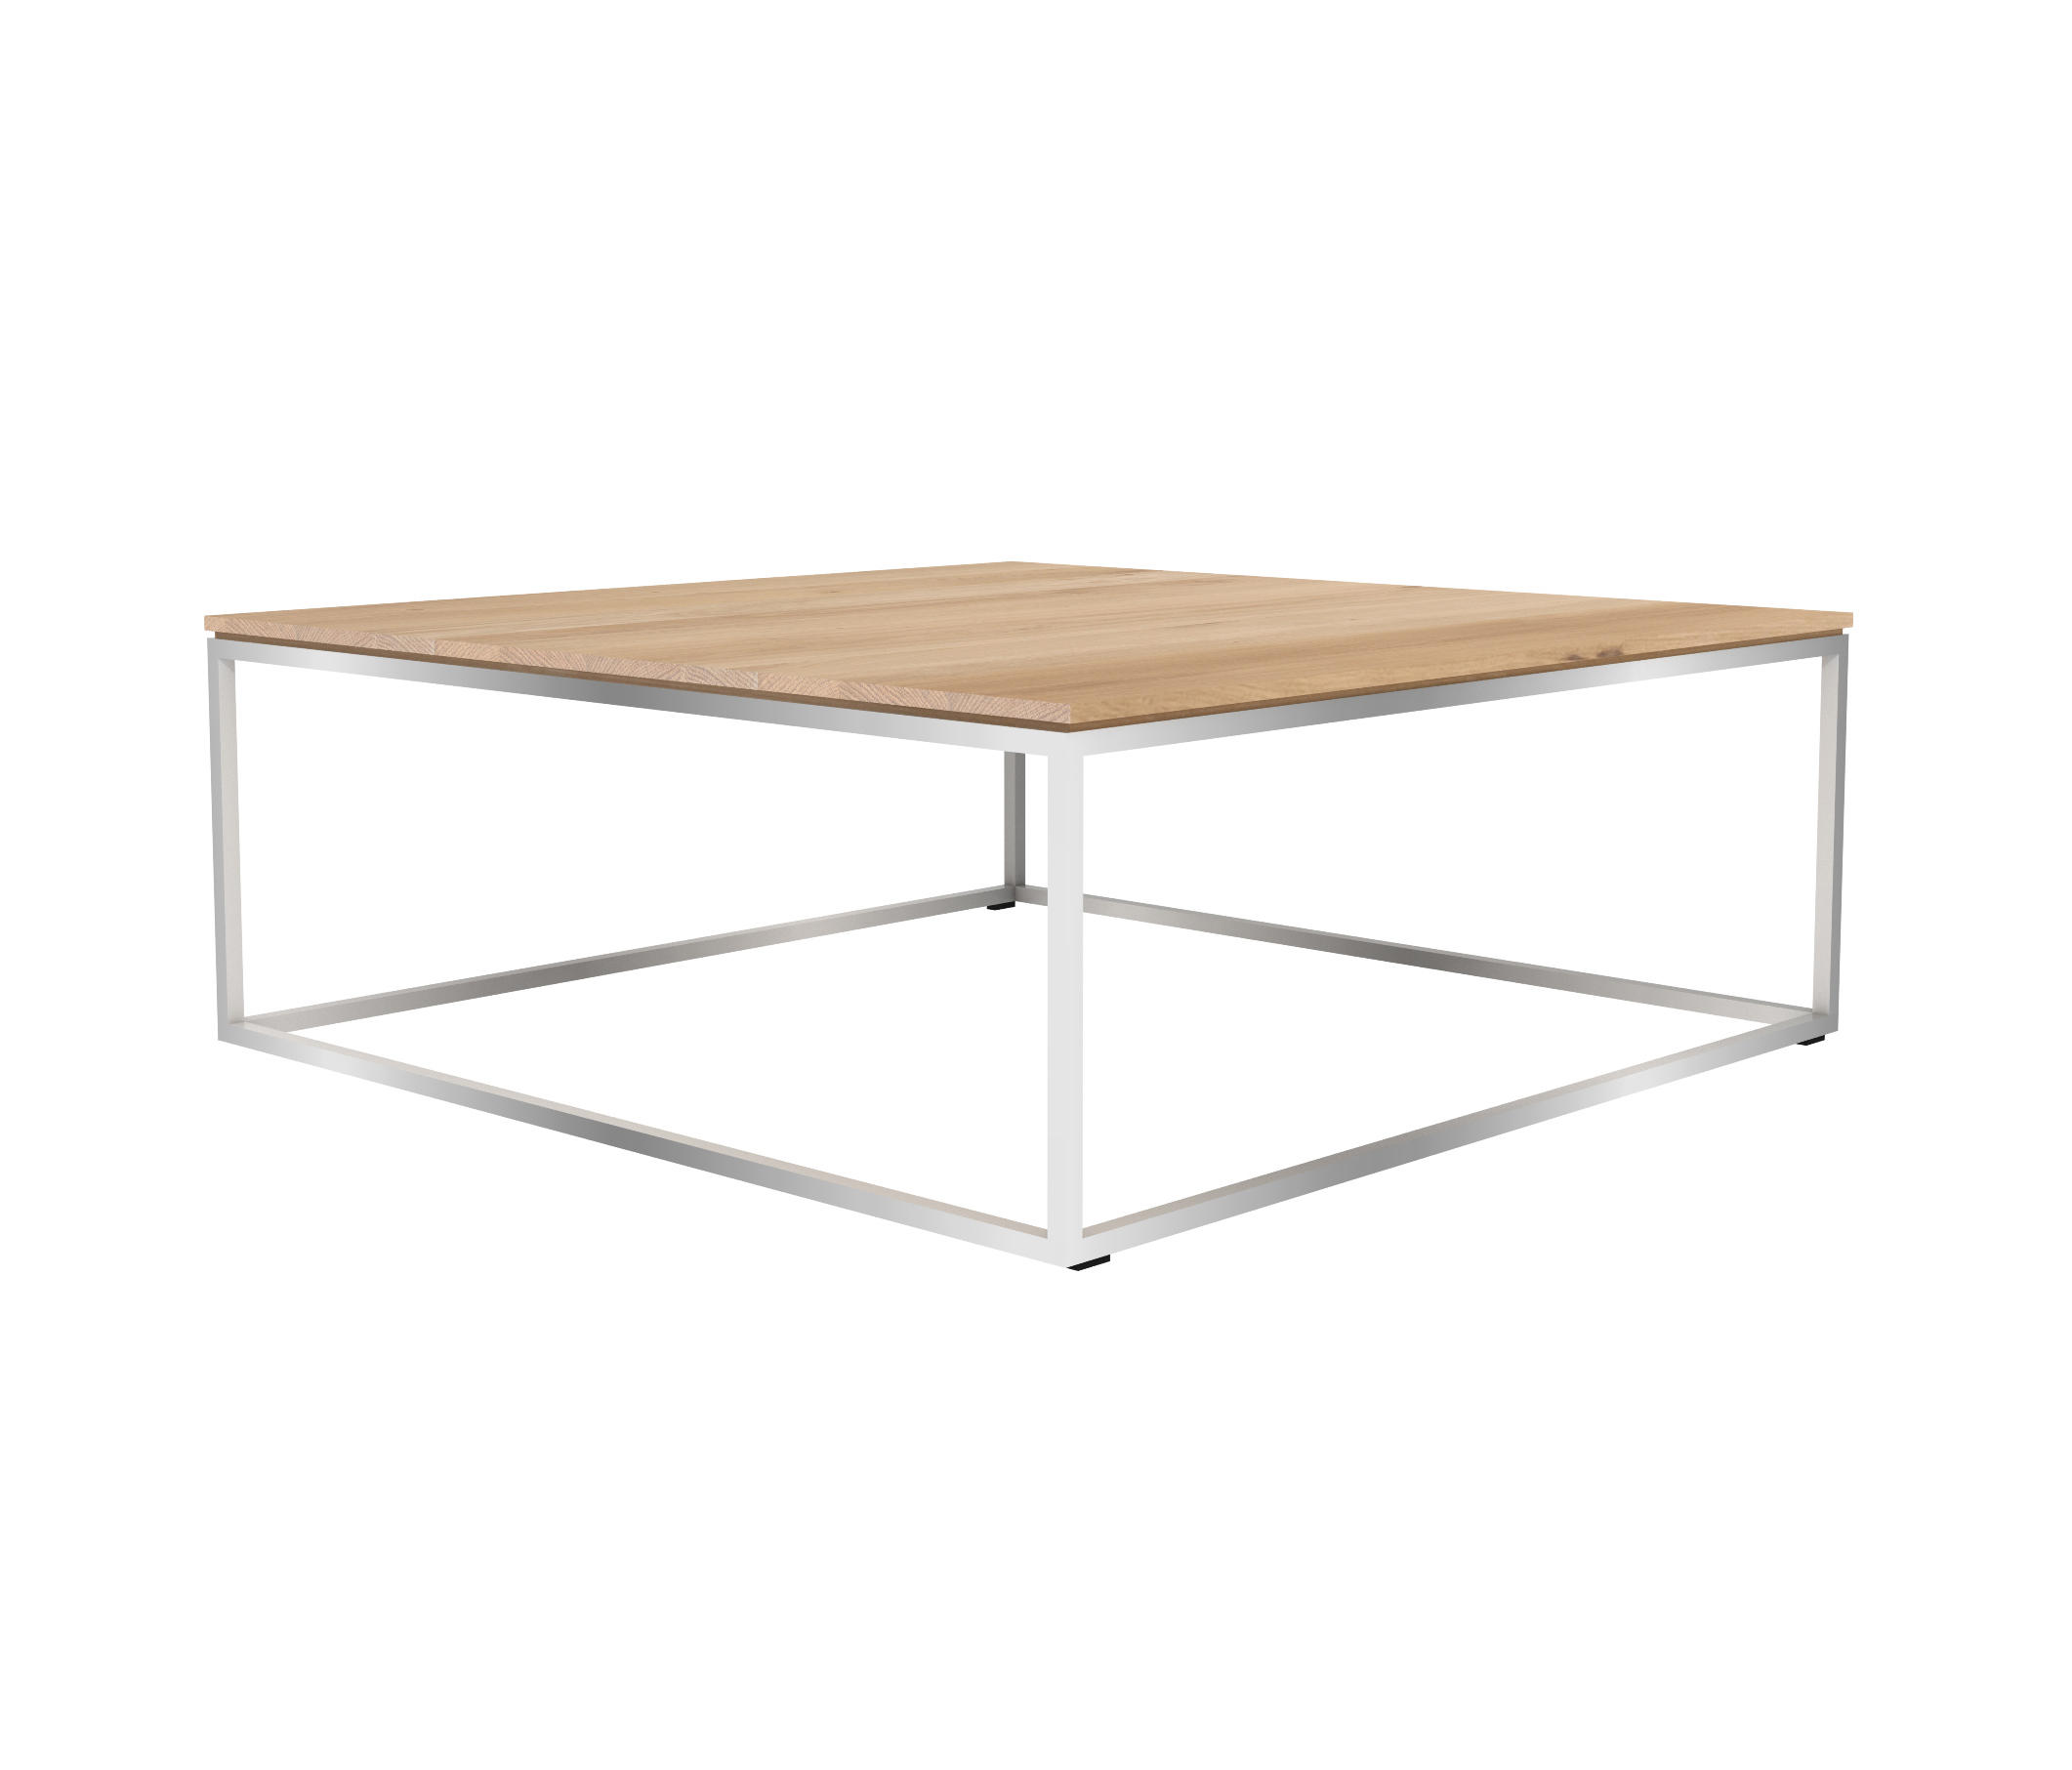 Oak thin coffee table lounge tables from ethnicraft architonic oak thin coffee table by ethnicraft lounge tables geotapseo Image collections